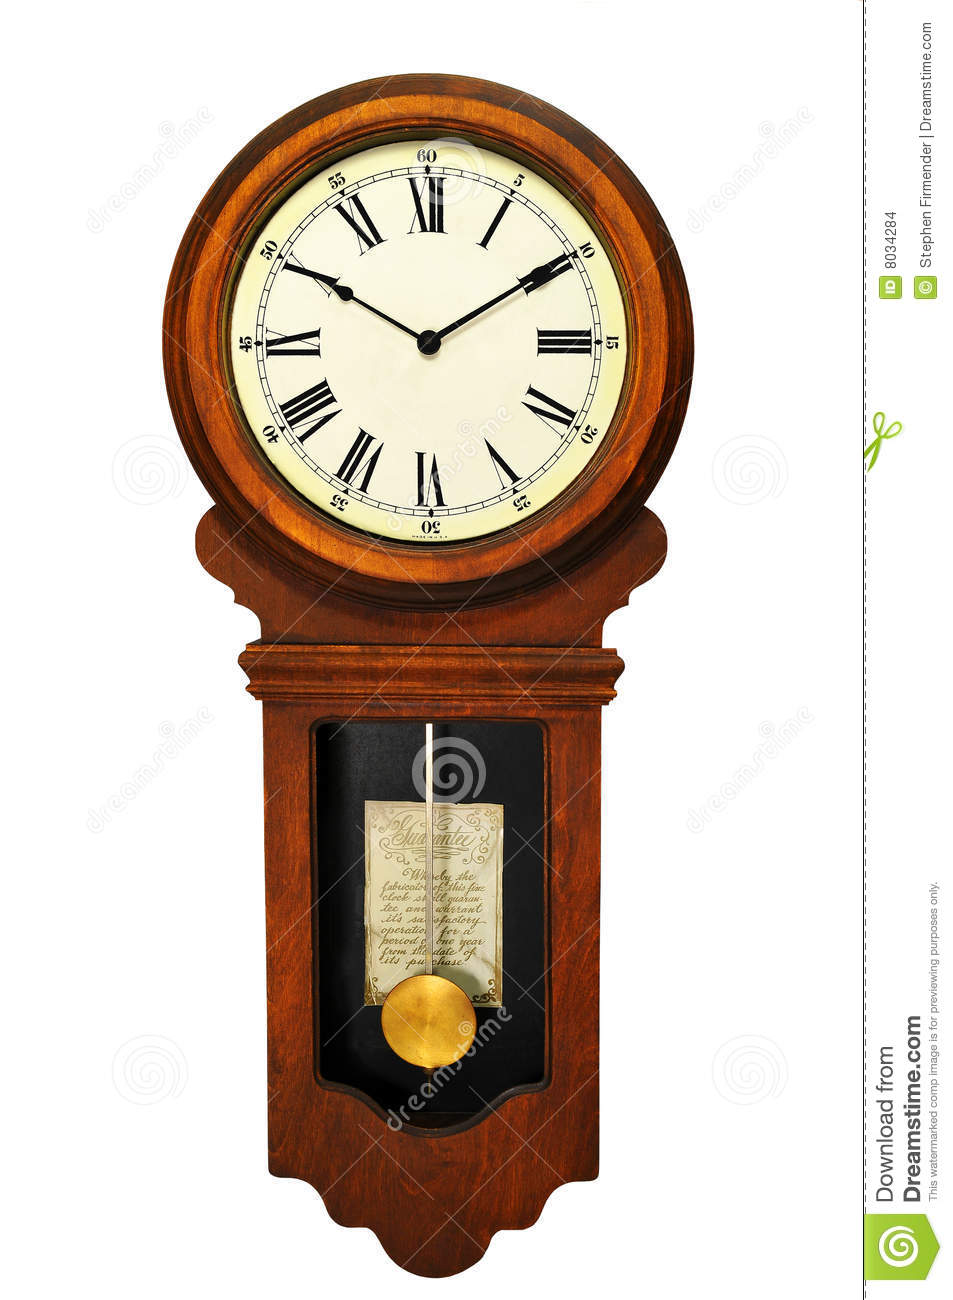 Antique wall clock stock photo image of vintage time for Reloj de pared antiguo